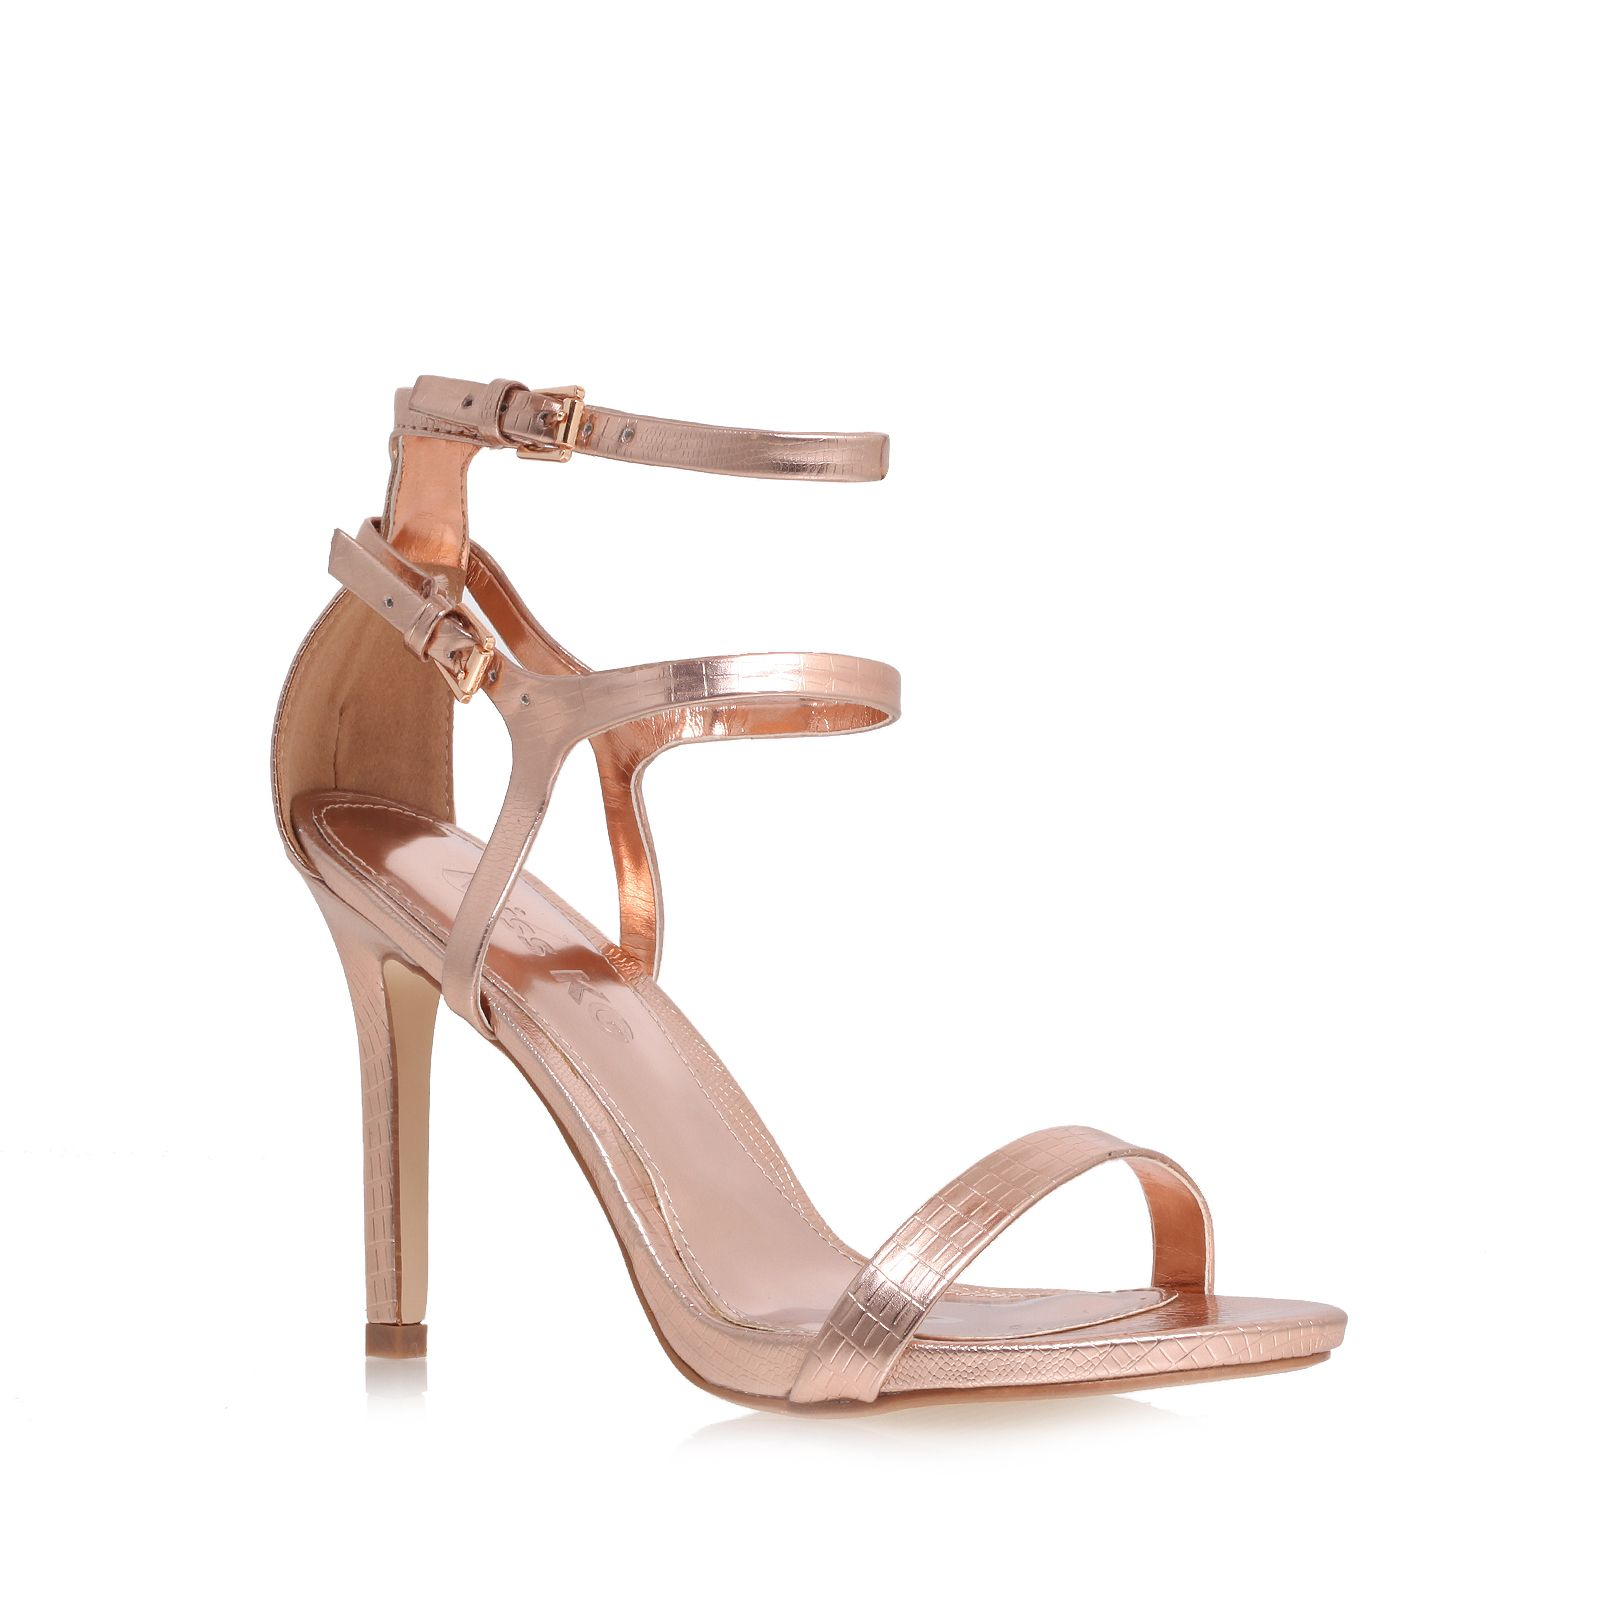 Emelie high heel sandals